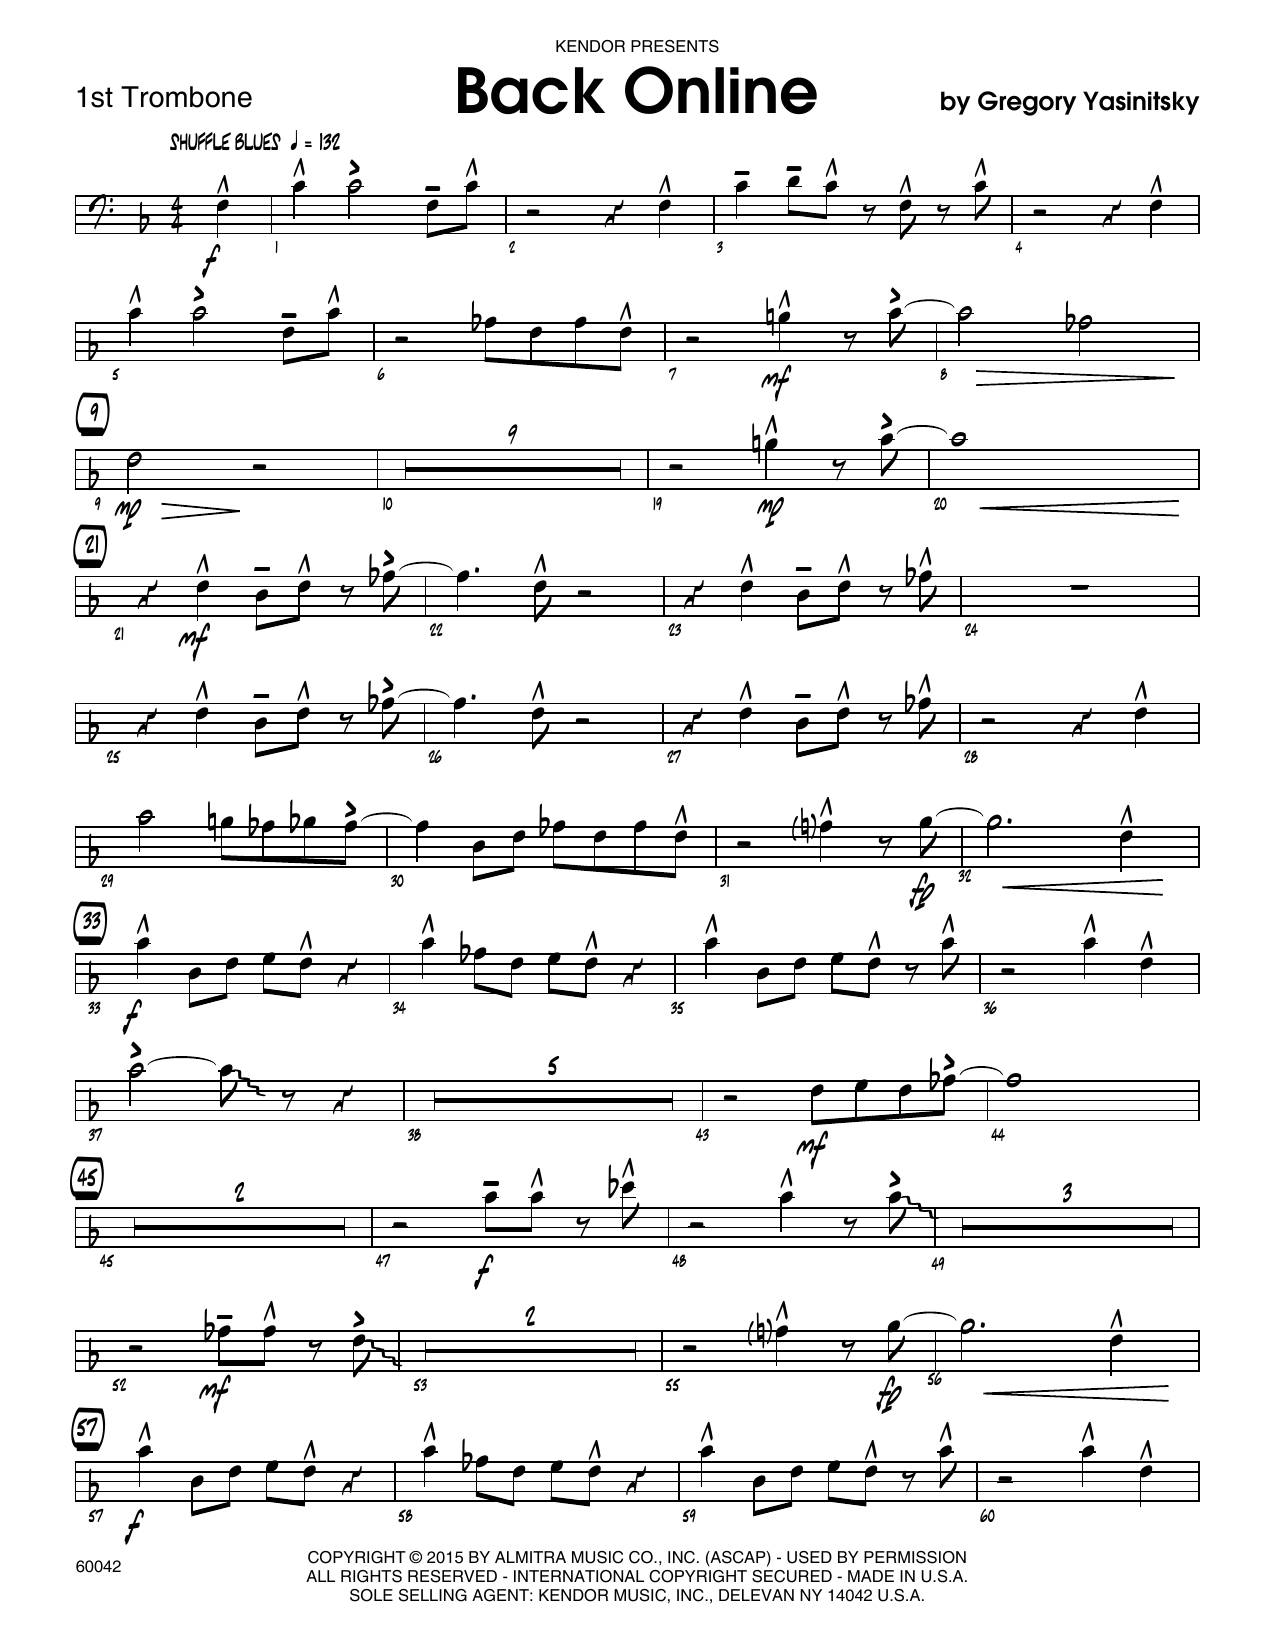 Back Online - 1st Trombone Sheet Music